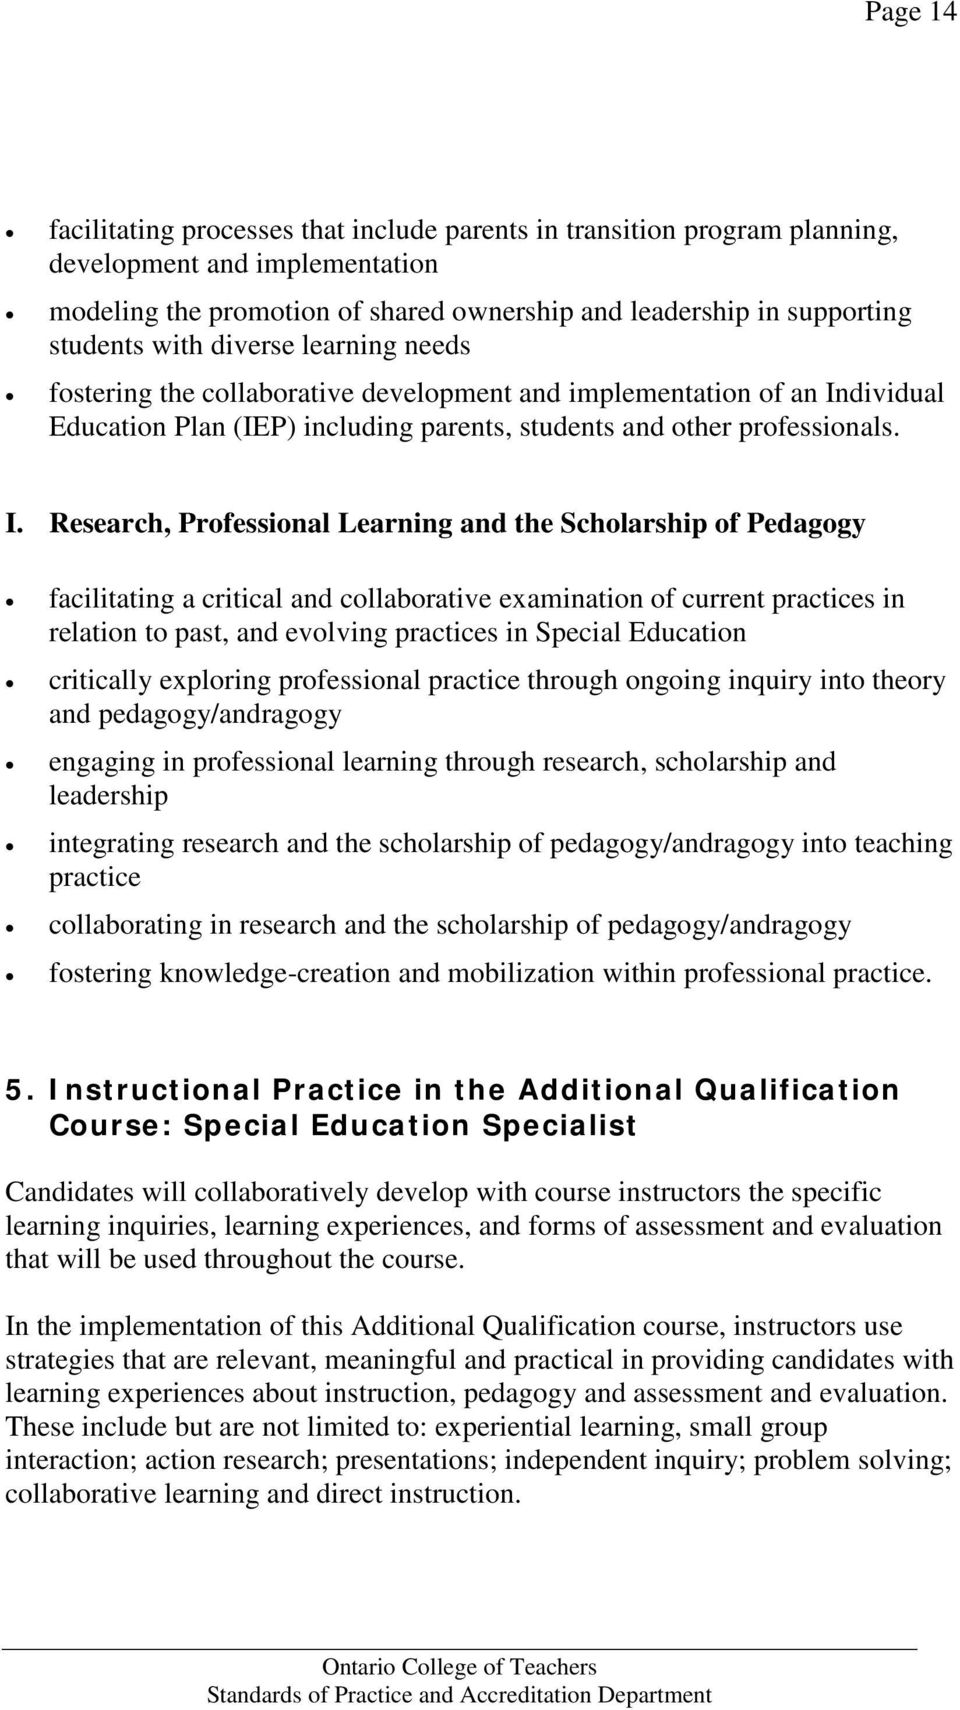 dividual Education Plan (IEP) including parents, students and other professionals. I.